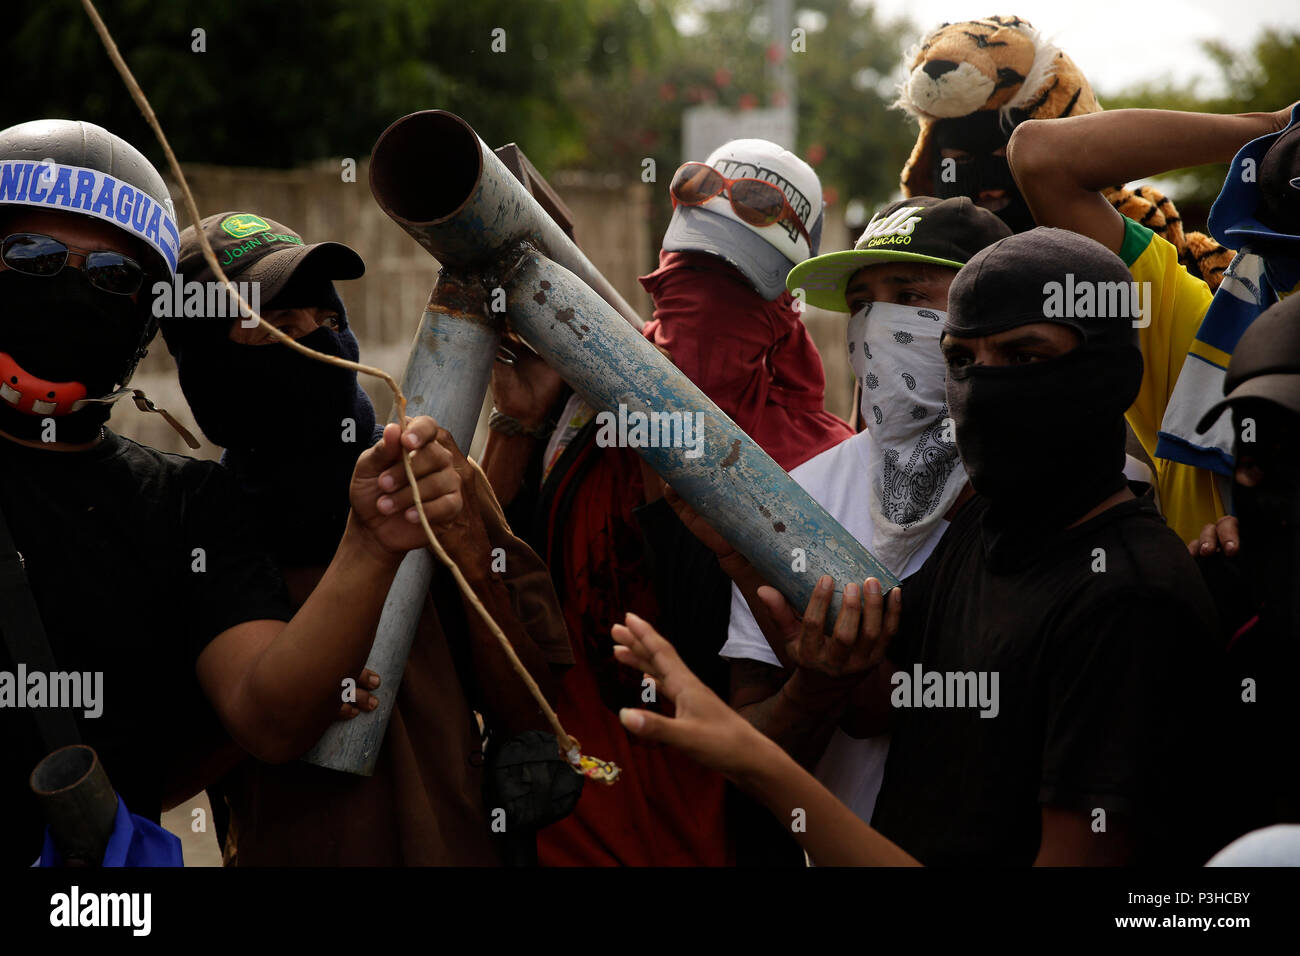 Masaya, Nicaragua. 19th June, 2018. Young men are seen with a weapon baptized as 'La Nina', in Masaya, Nicaragua, 18 June 2018. Masaya, the city that was the cradle of the Sandinista revolution forty years ago and today leads the revolts against Nicaraguan President Daniel Ortega, prepares for self-government, announcing that they reject the authority of the Ortega government, as well as after throwing out the mayor, and confining the police in their barracks. Credit: RODRIGO SURA/EFE/Alamy Live News - Stock Image